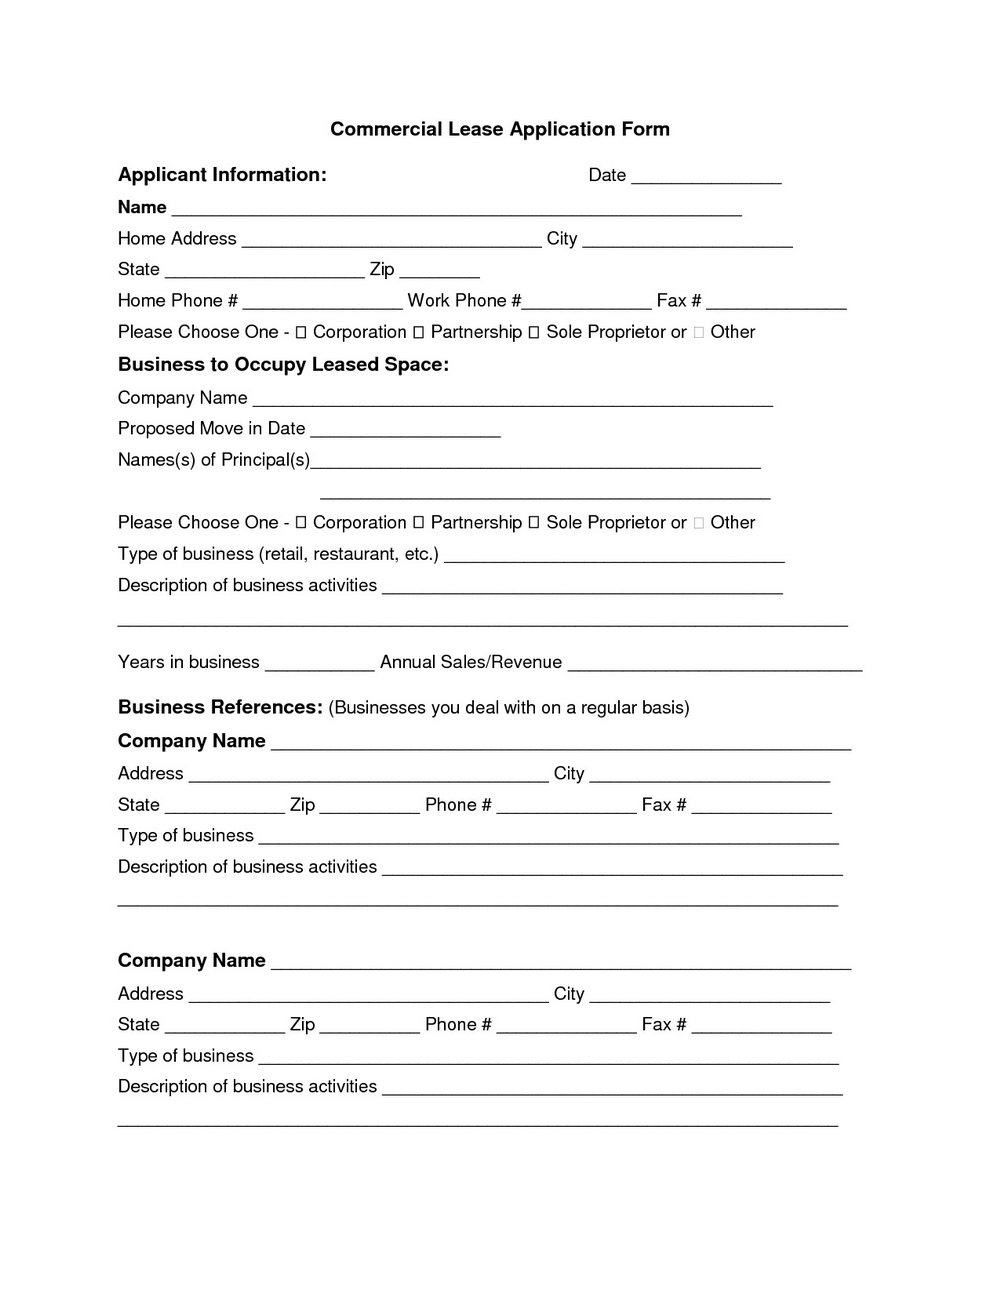 Land Lease Contract Template